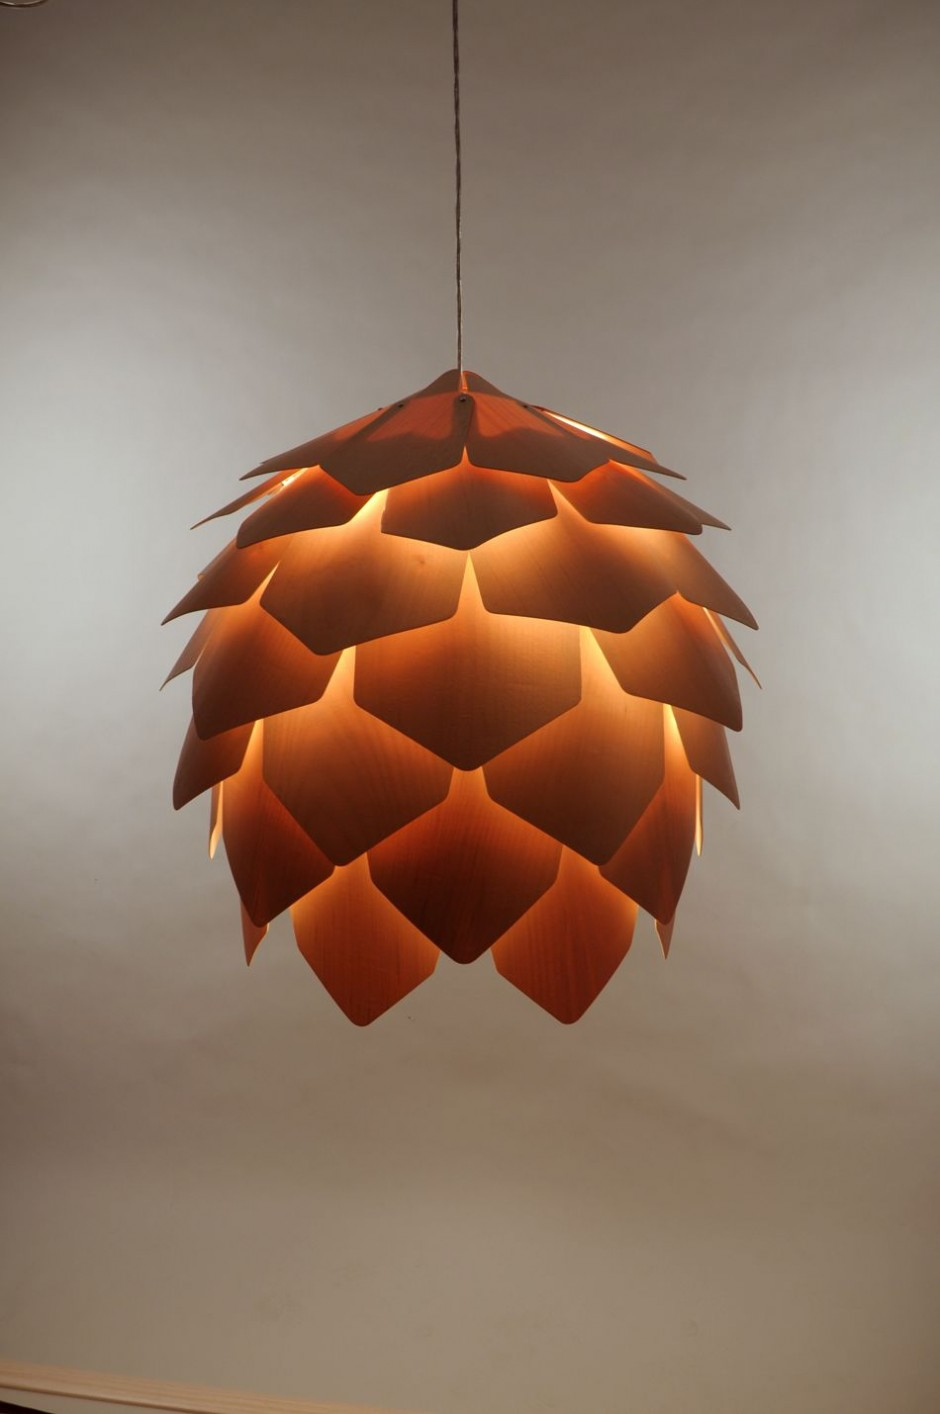 Crimean Pinecone Lamp, by Pavel Eekra